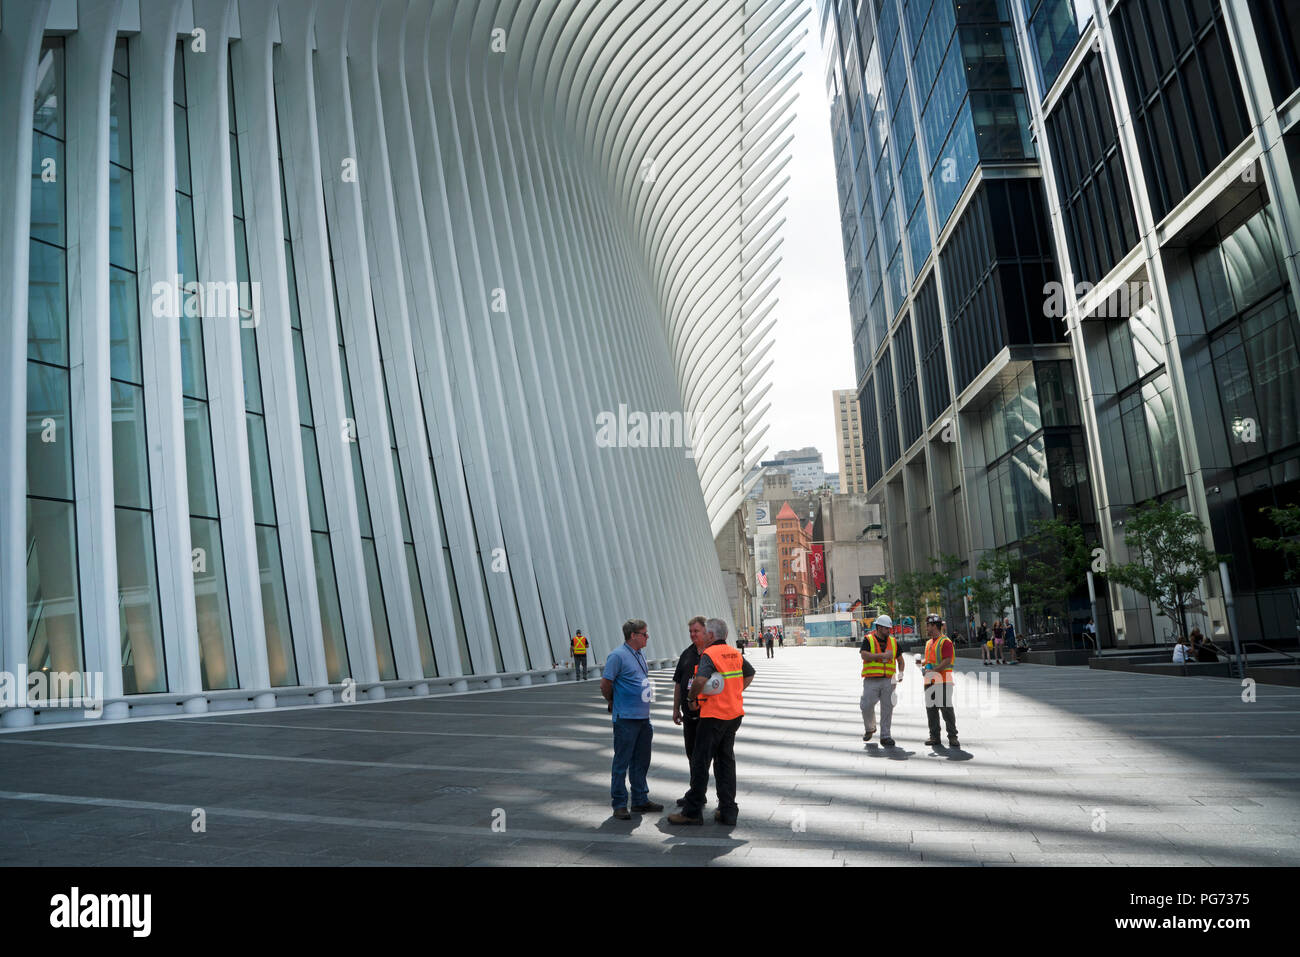 Tower 3 at the World Trade Center site opened on June 11, 2018 across from the transportation hub known as the Oculus. - Stock Image